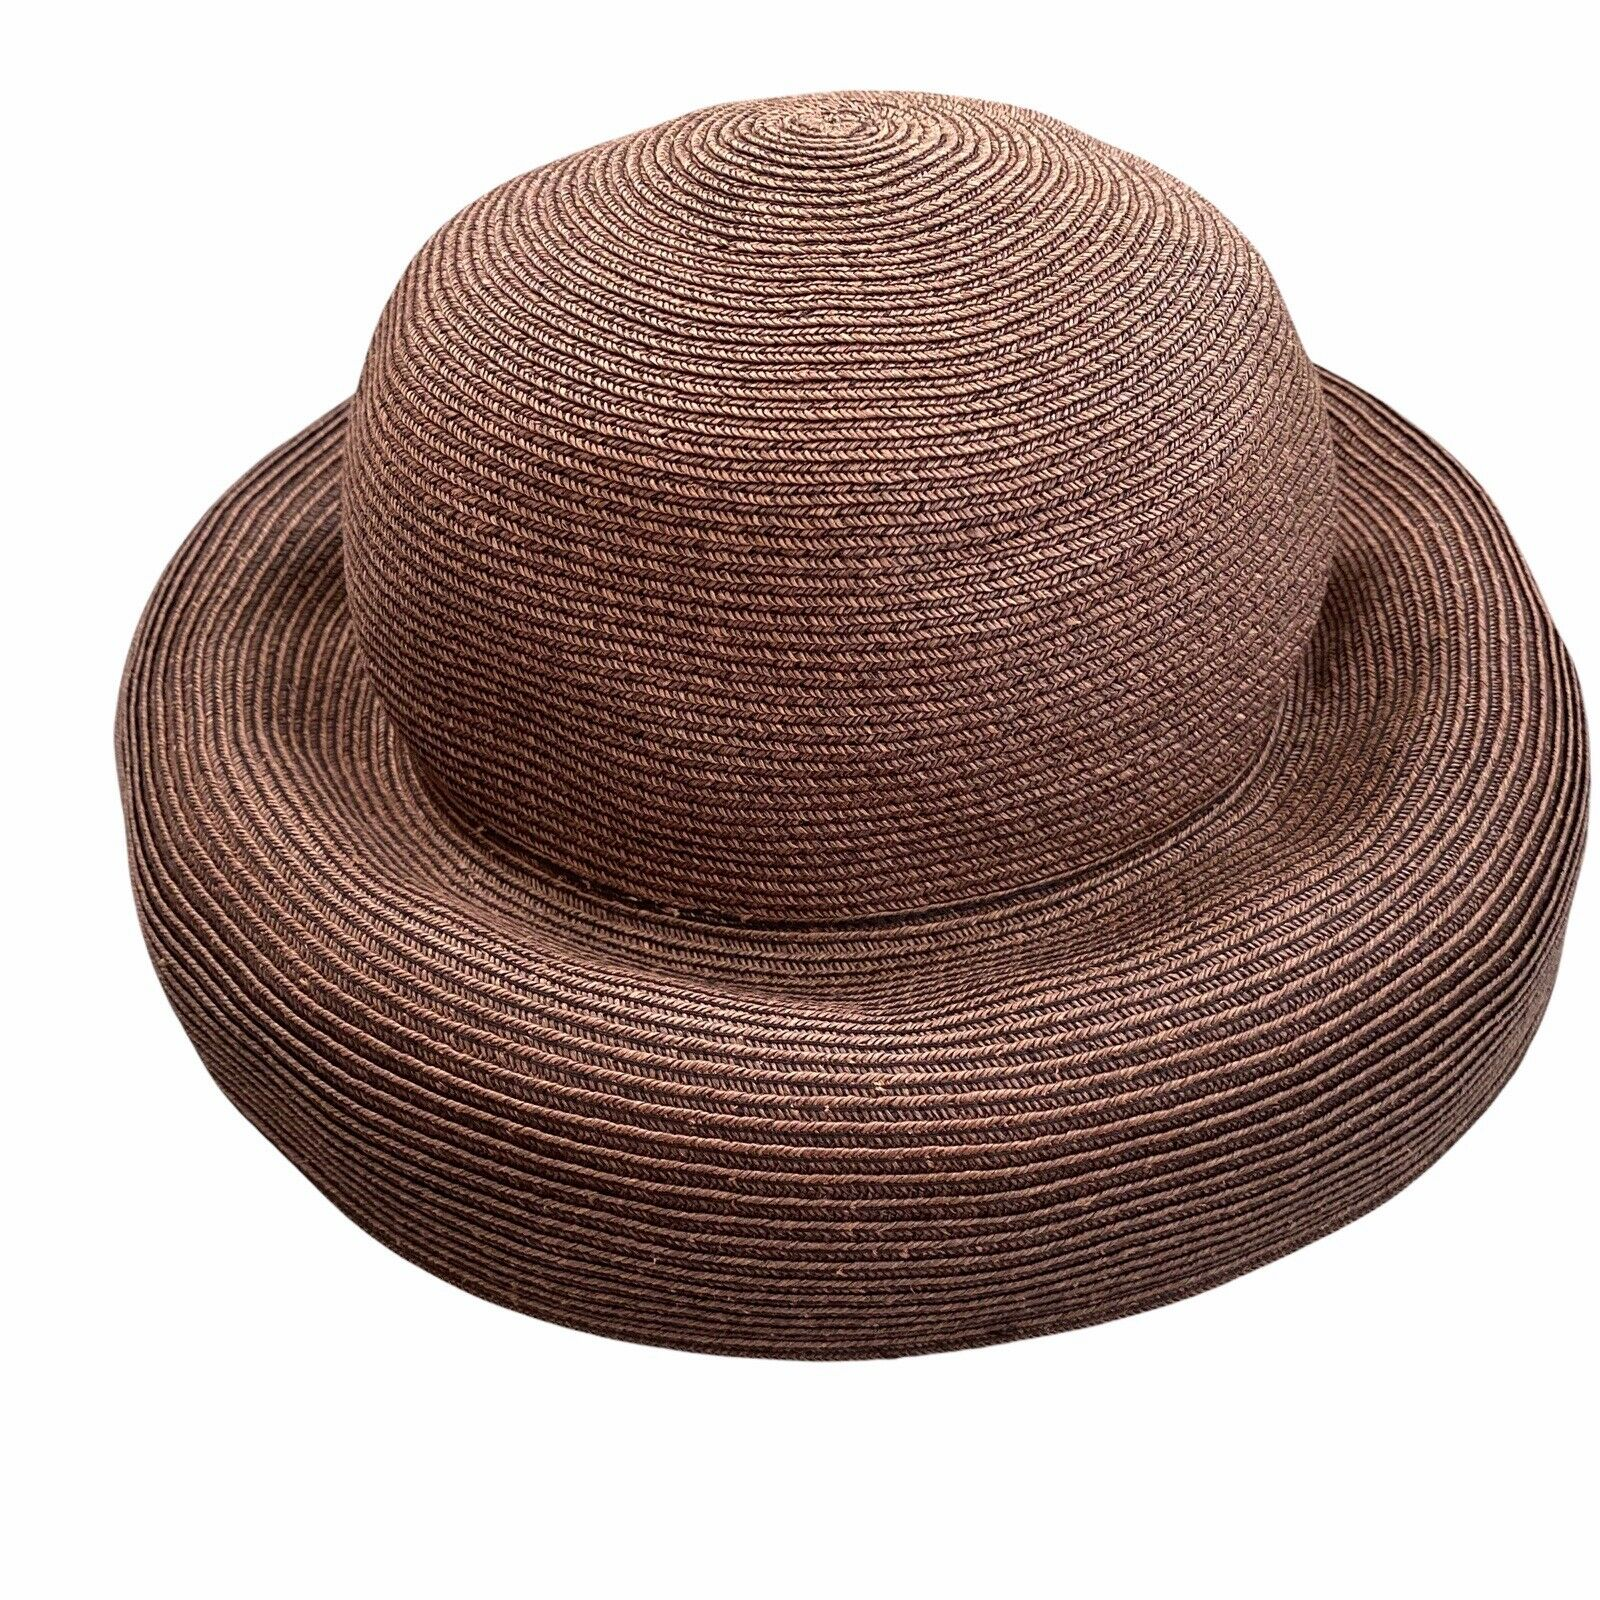 Eric Javits Squishee Packable Straw Hat Wide Brim… - image 5